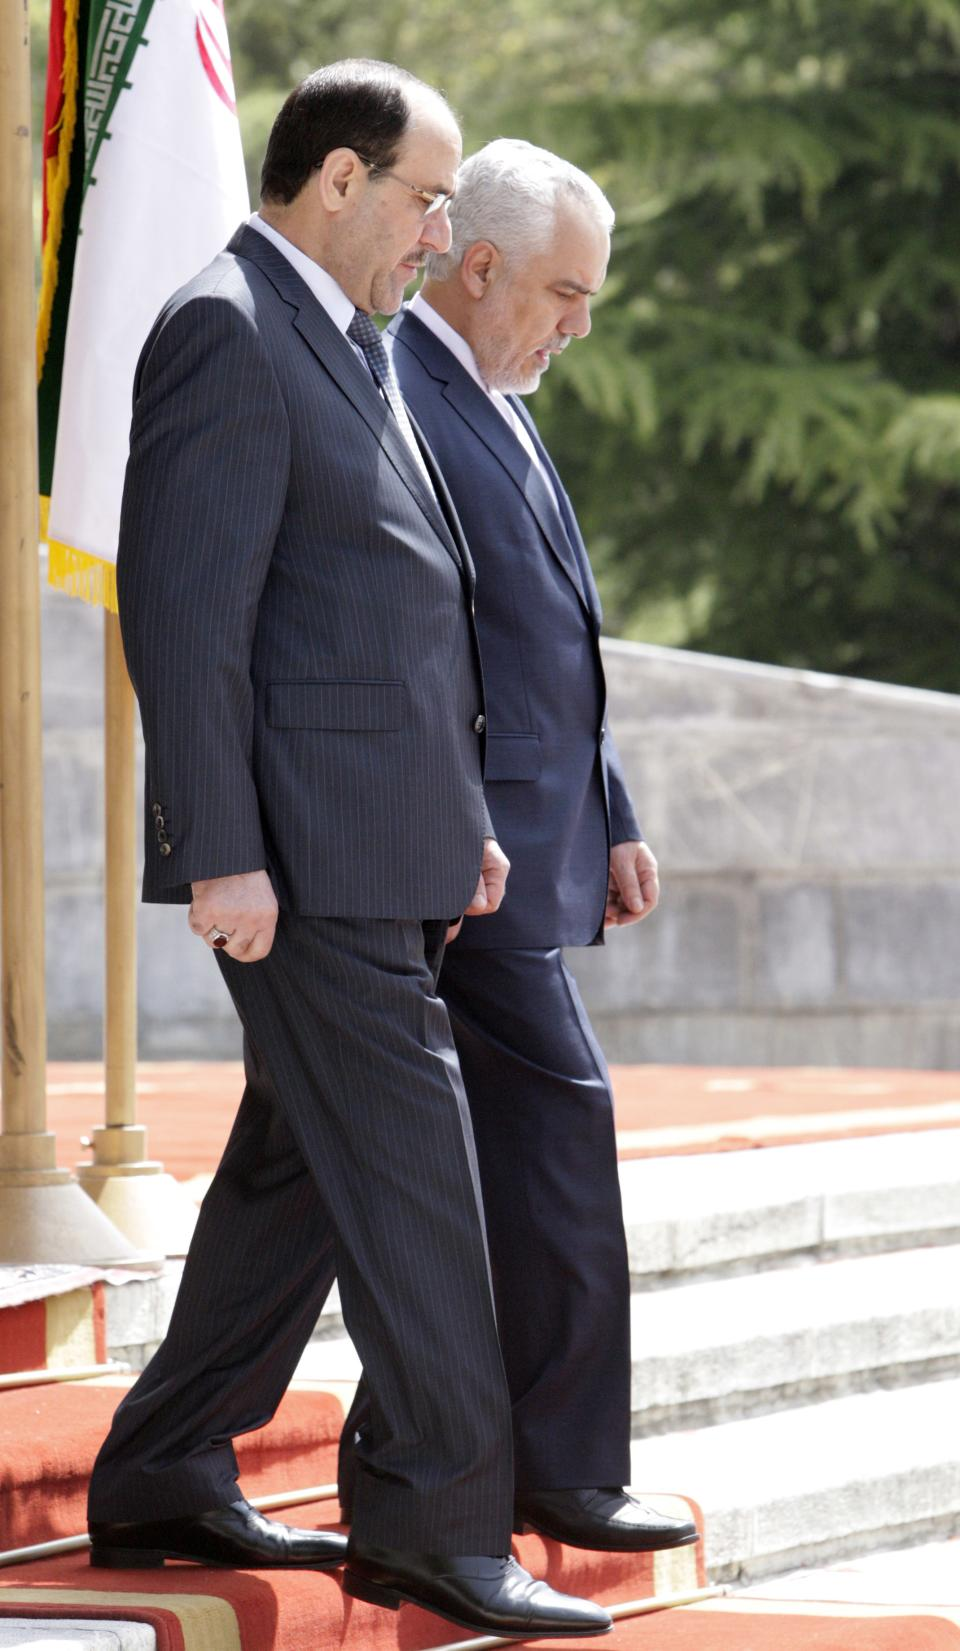 Iraqi Prime Minister Nouri al-Maliki, left, attends an official arrival ceremony as he is accompanied by Iranian Vice-President Mohammad Reza Rahimi in Tehran, Iran, Sunday, April 22, 2012. (AP Photo/Vahid Salemi)